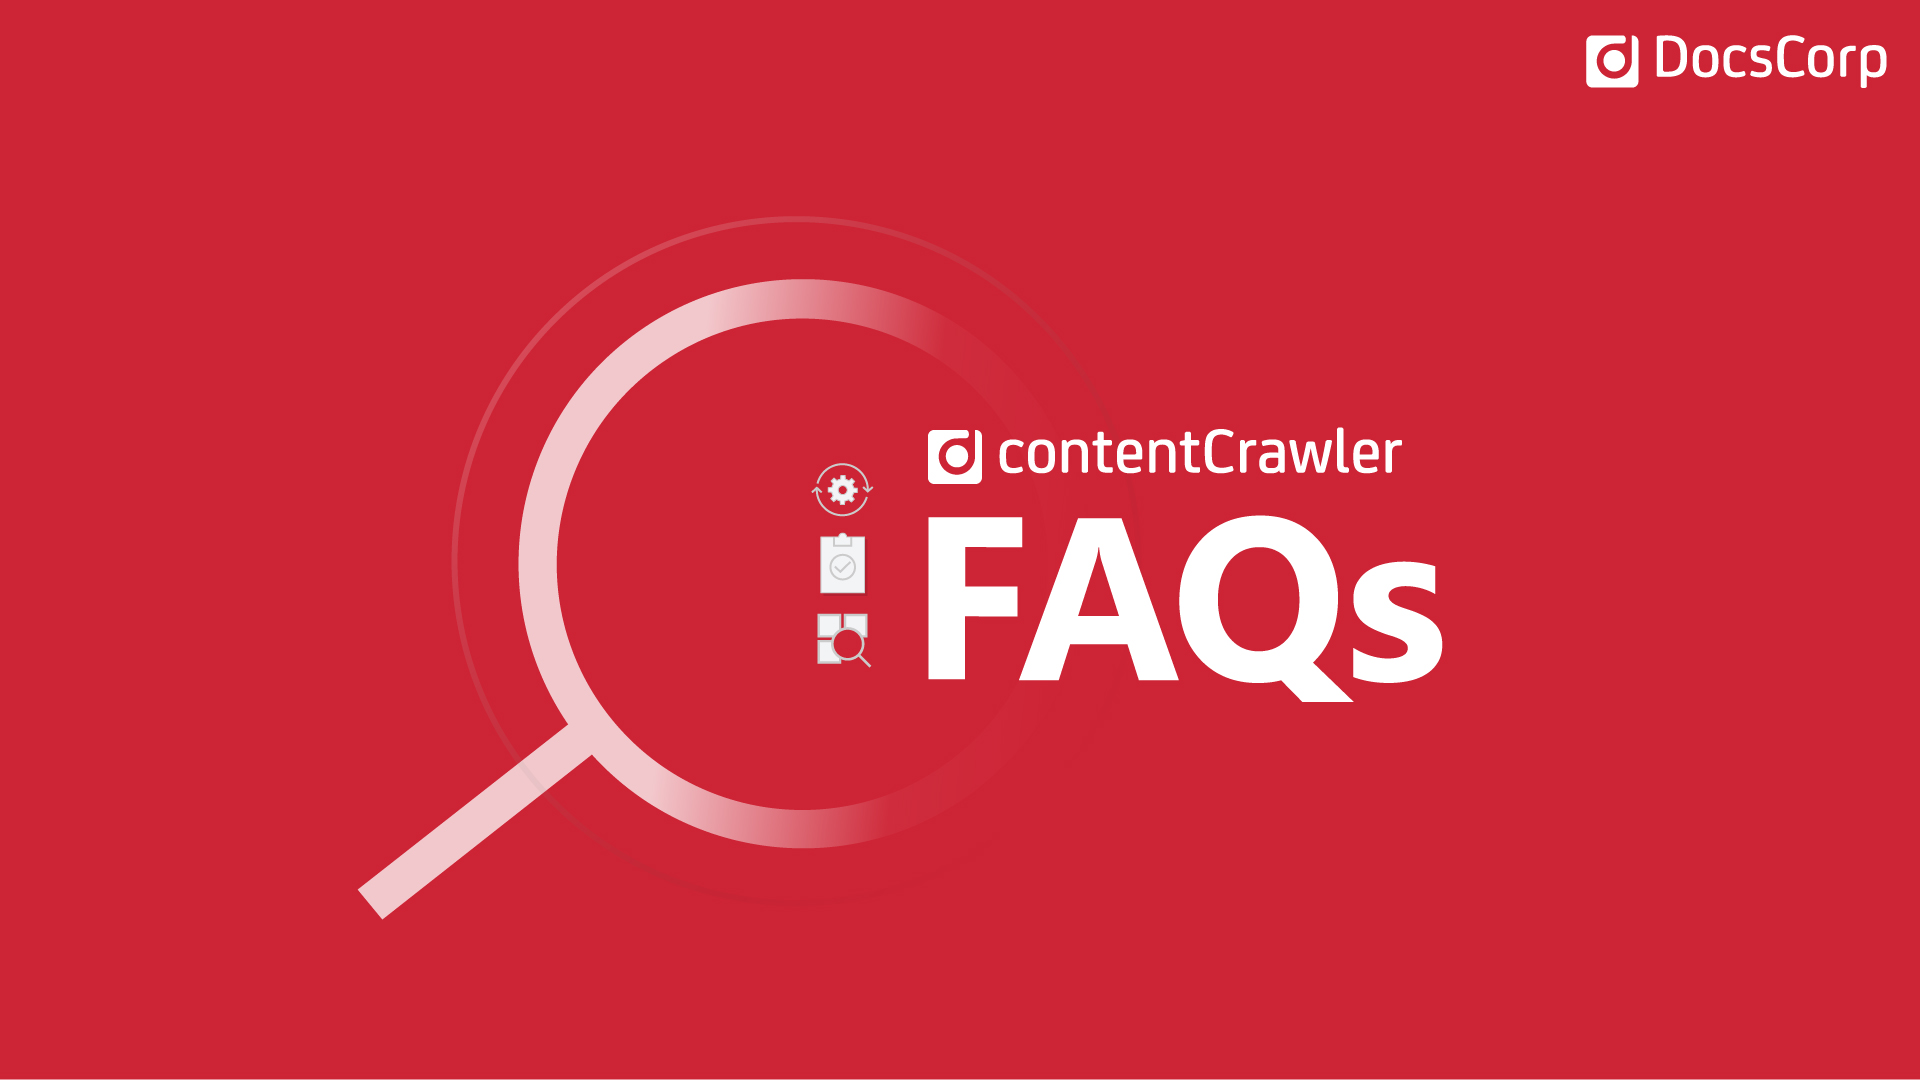 Answers to common contentCrawler questions